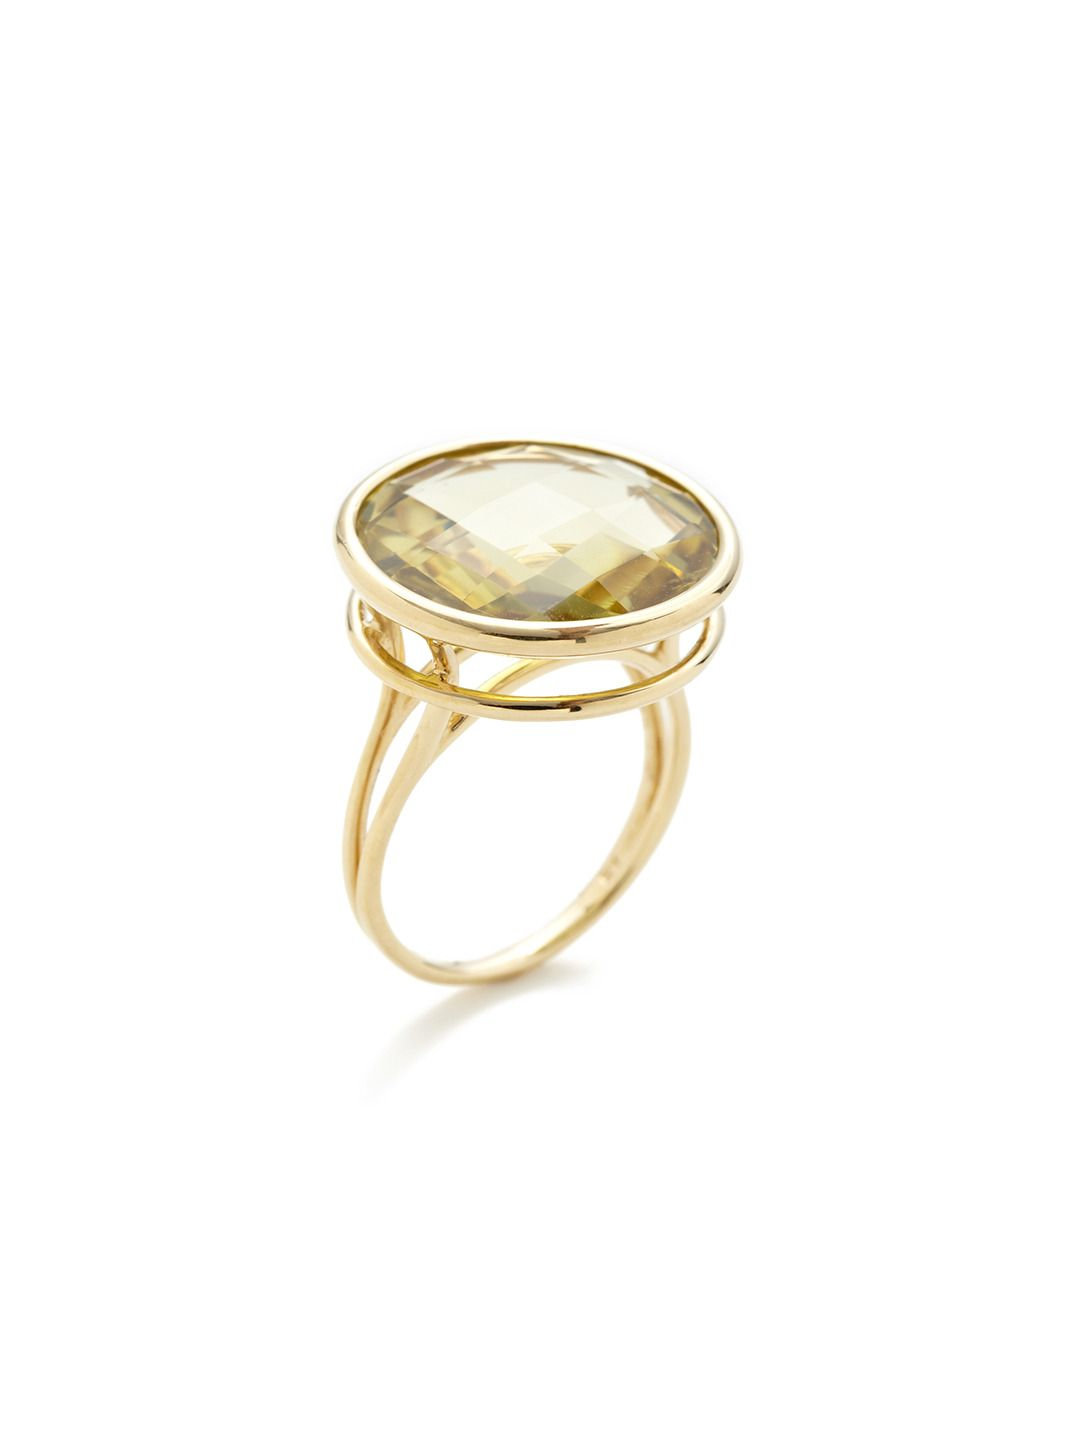 "Green Gold Quartz Disc Ring by Vianna at Gilt  18K yellow gold and faceted green gold quartz disc ring with cutout side details  Total green gold quartz carat weight is 15.50 Ring is sizeable by up to two sizes larger or smaller Measurements: 0.77"" in diameter"